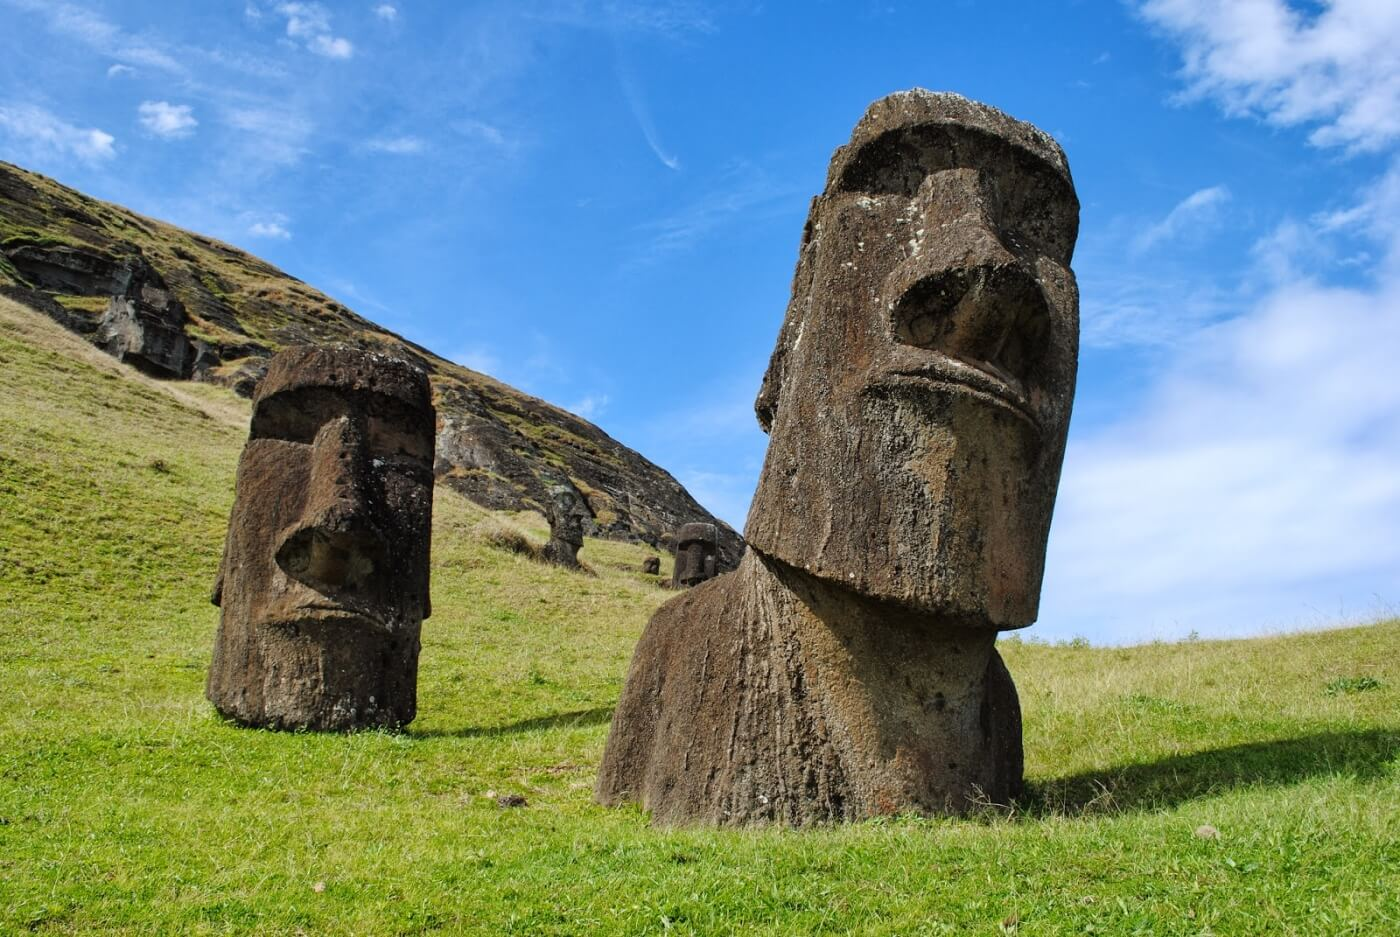 Archaeologists have solved the mystery of the statues on Easter island